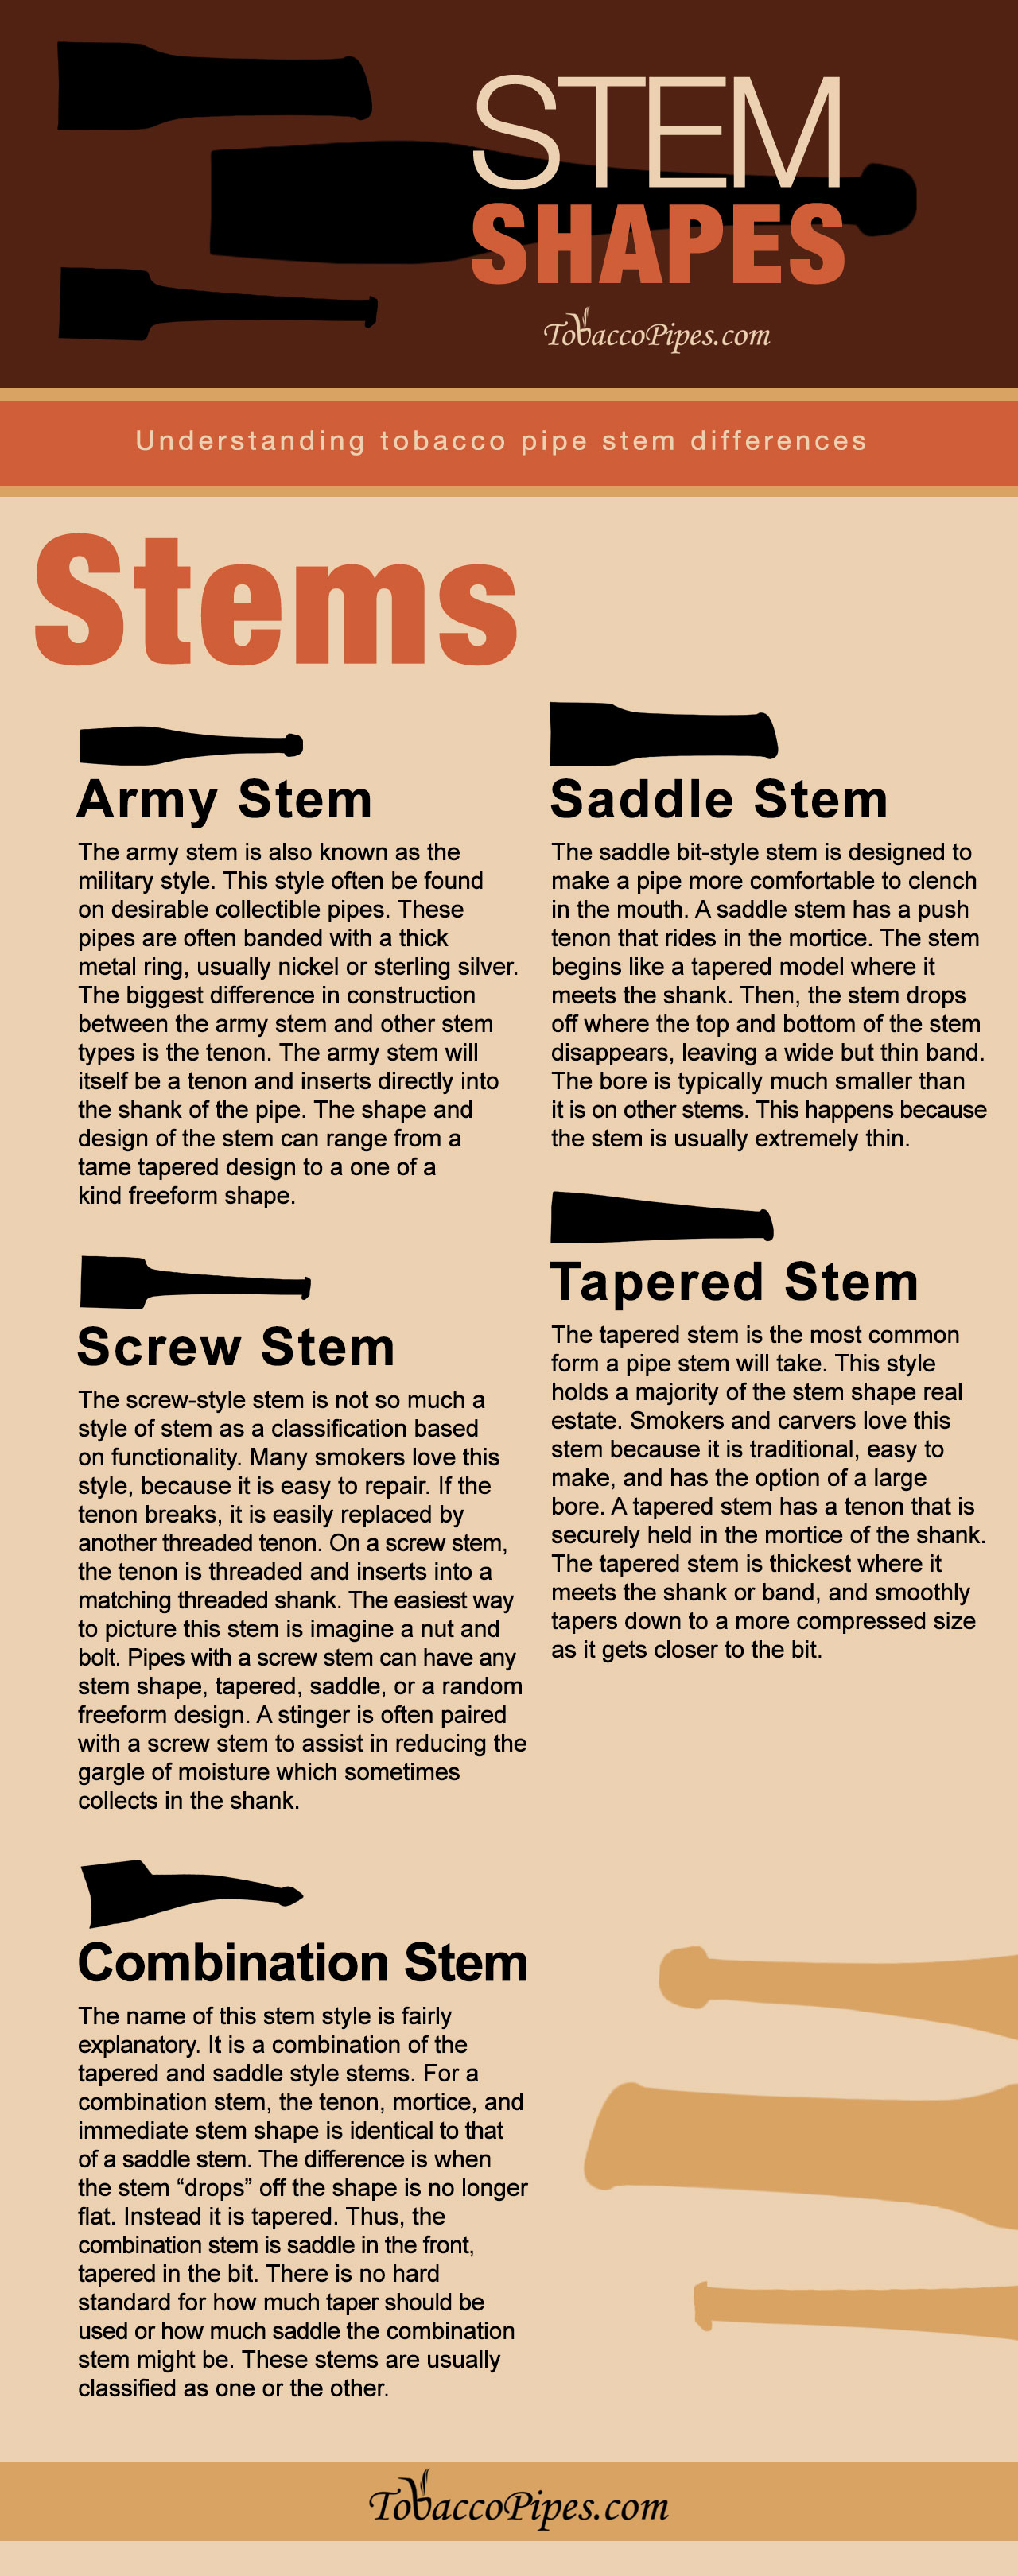 Stem Guide for Tobacco Pipes